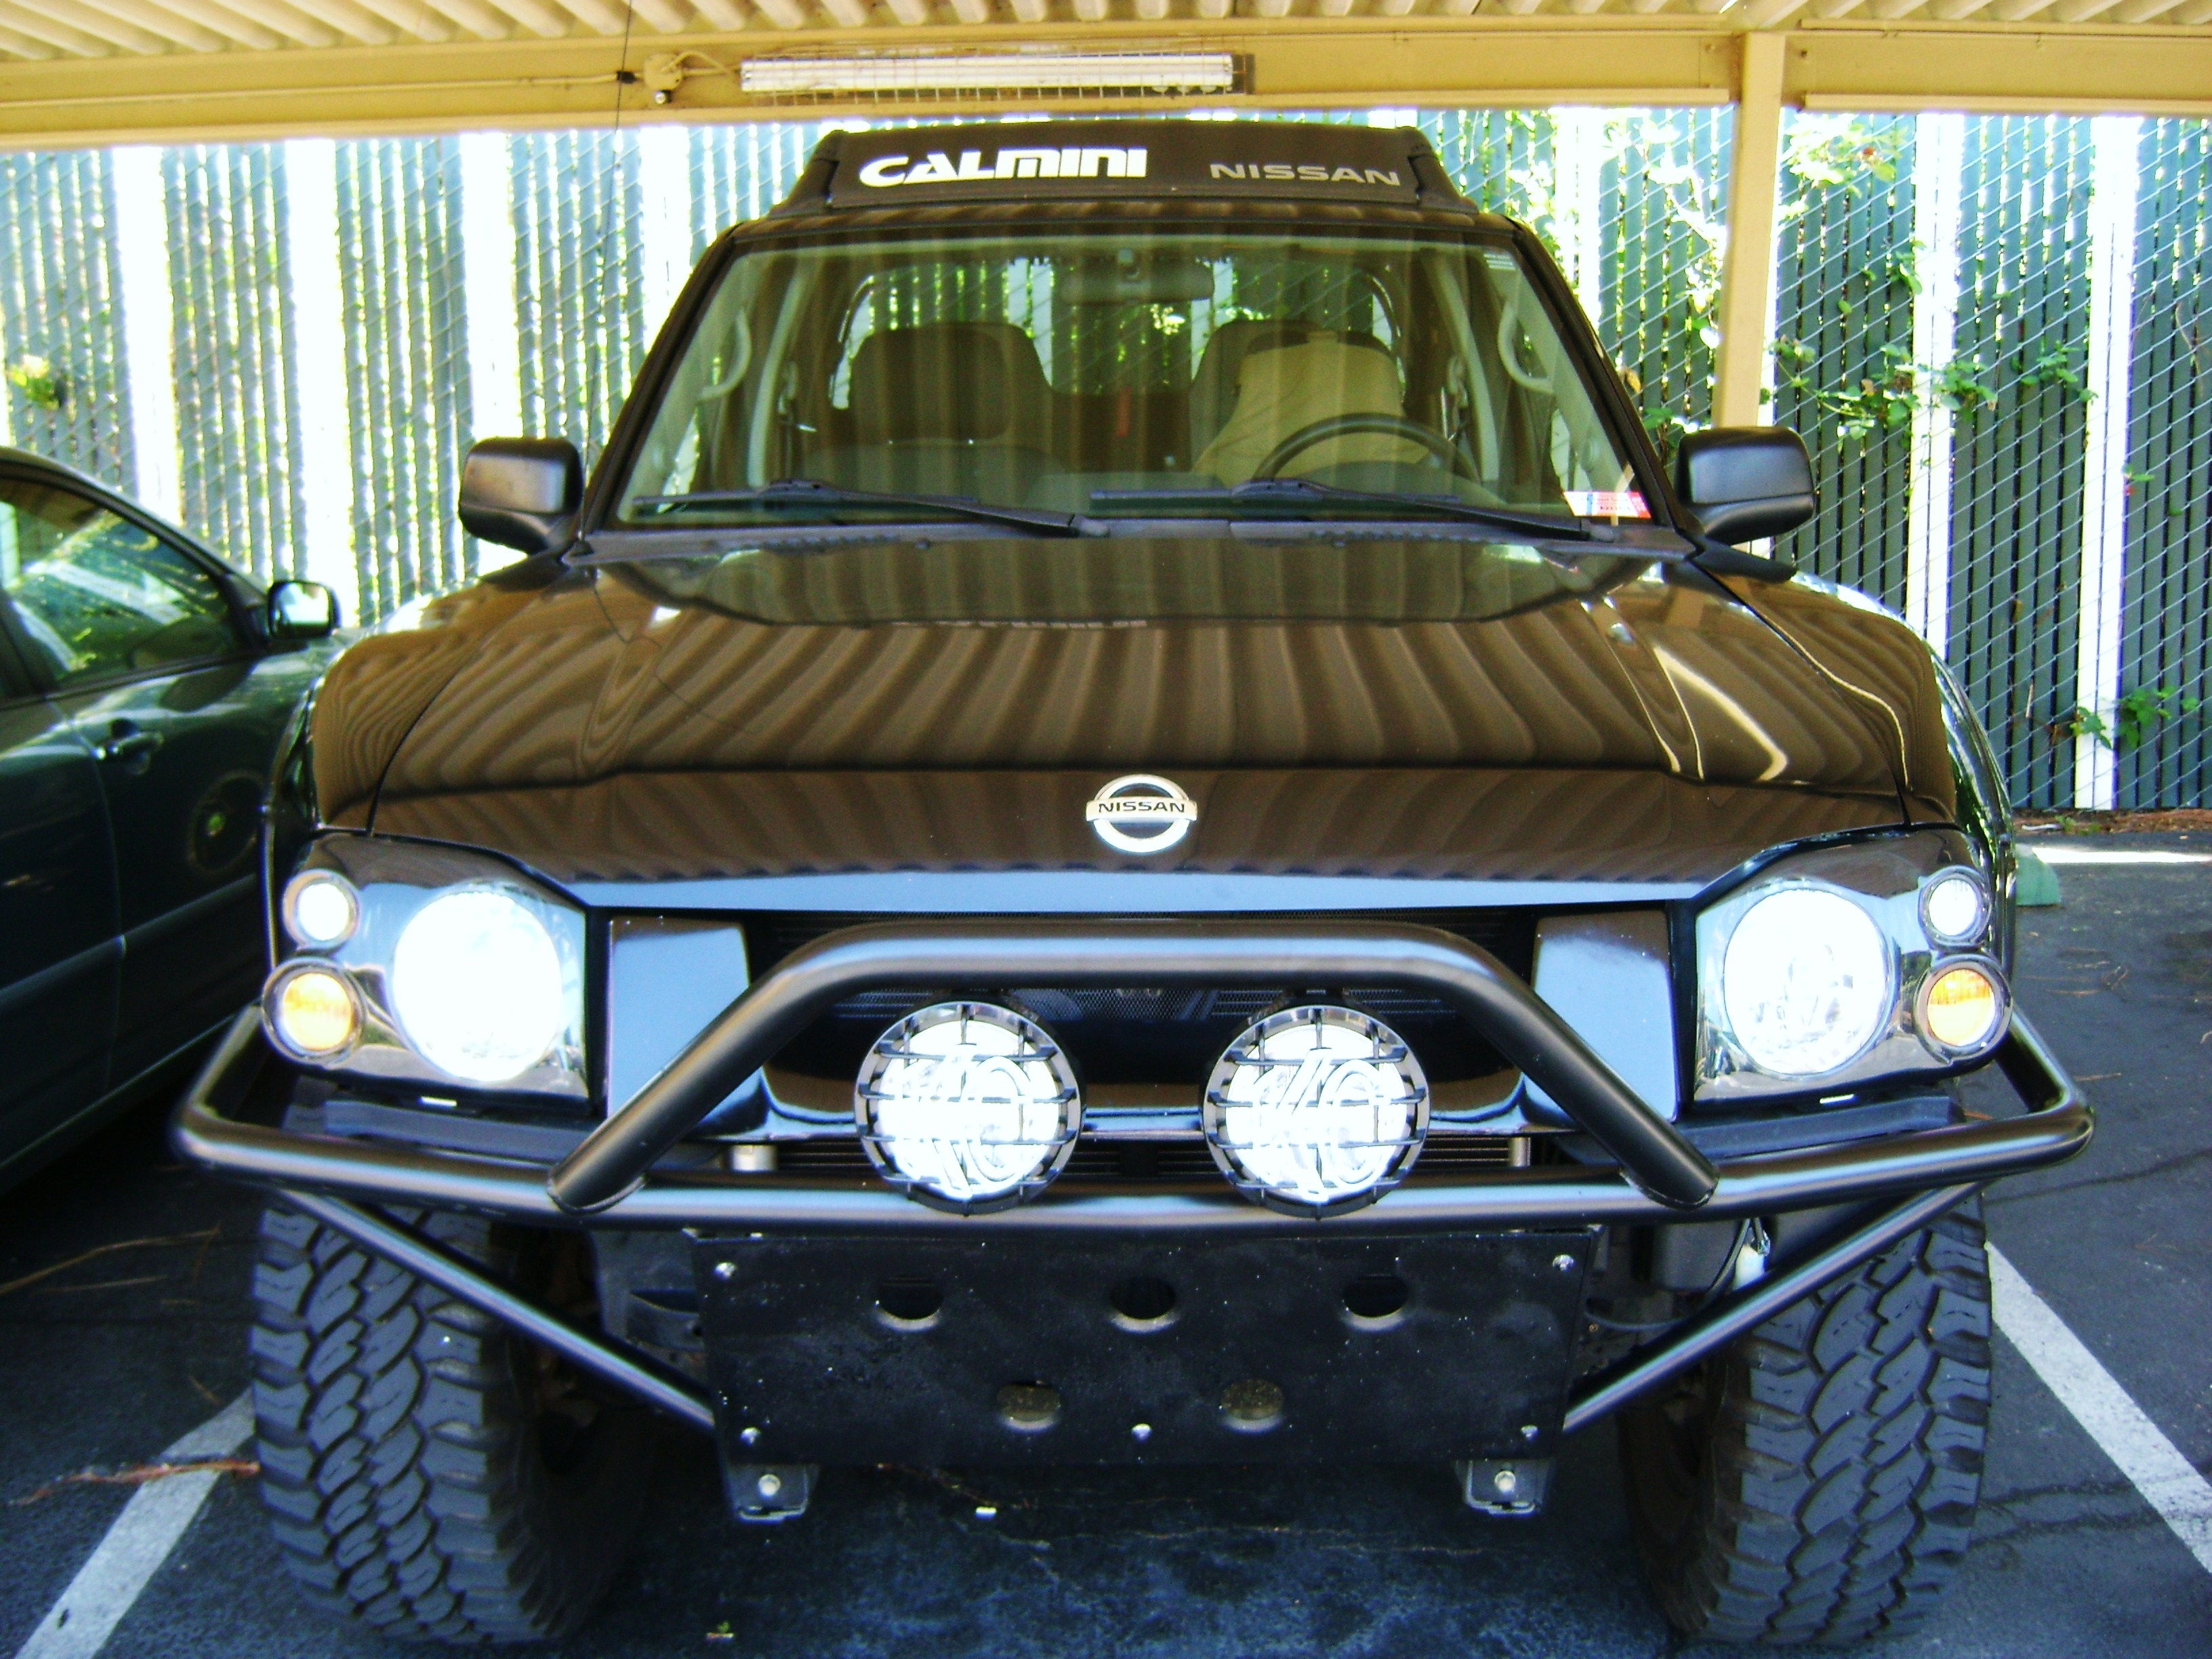 Nissan frontier crew cab xe pickup 4d 6 ft page 2 view all pikup2kikupdust 2003 nissan frontier crew cab vanachro Images